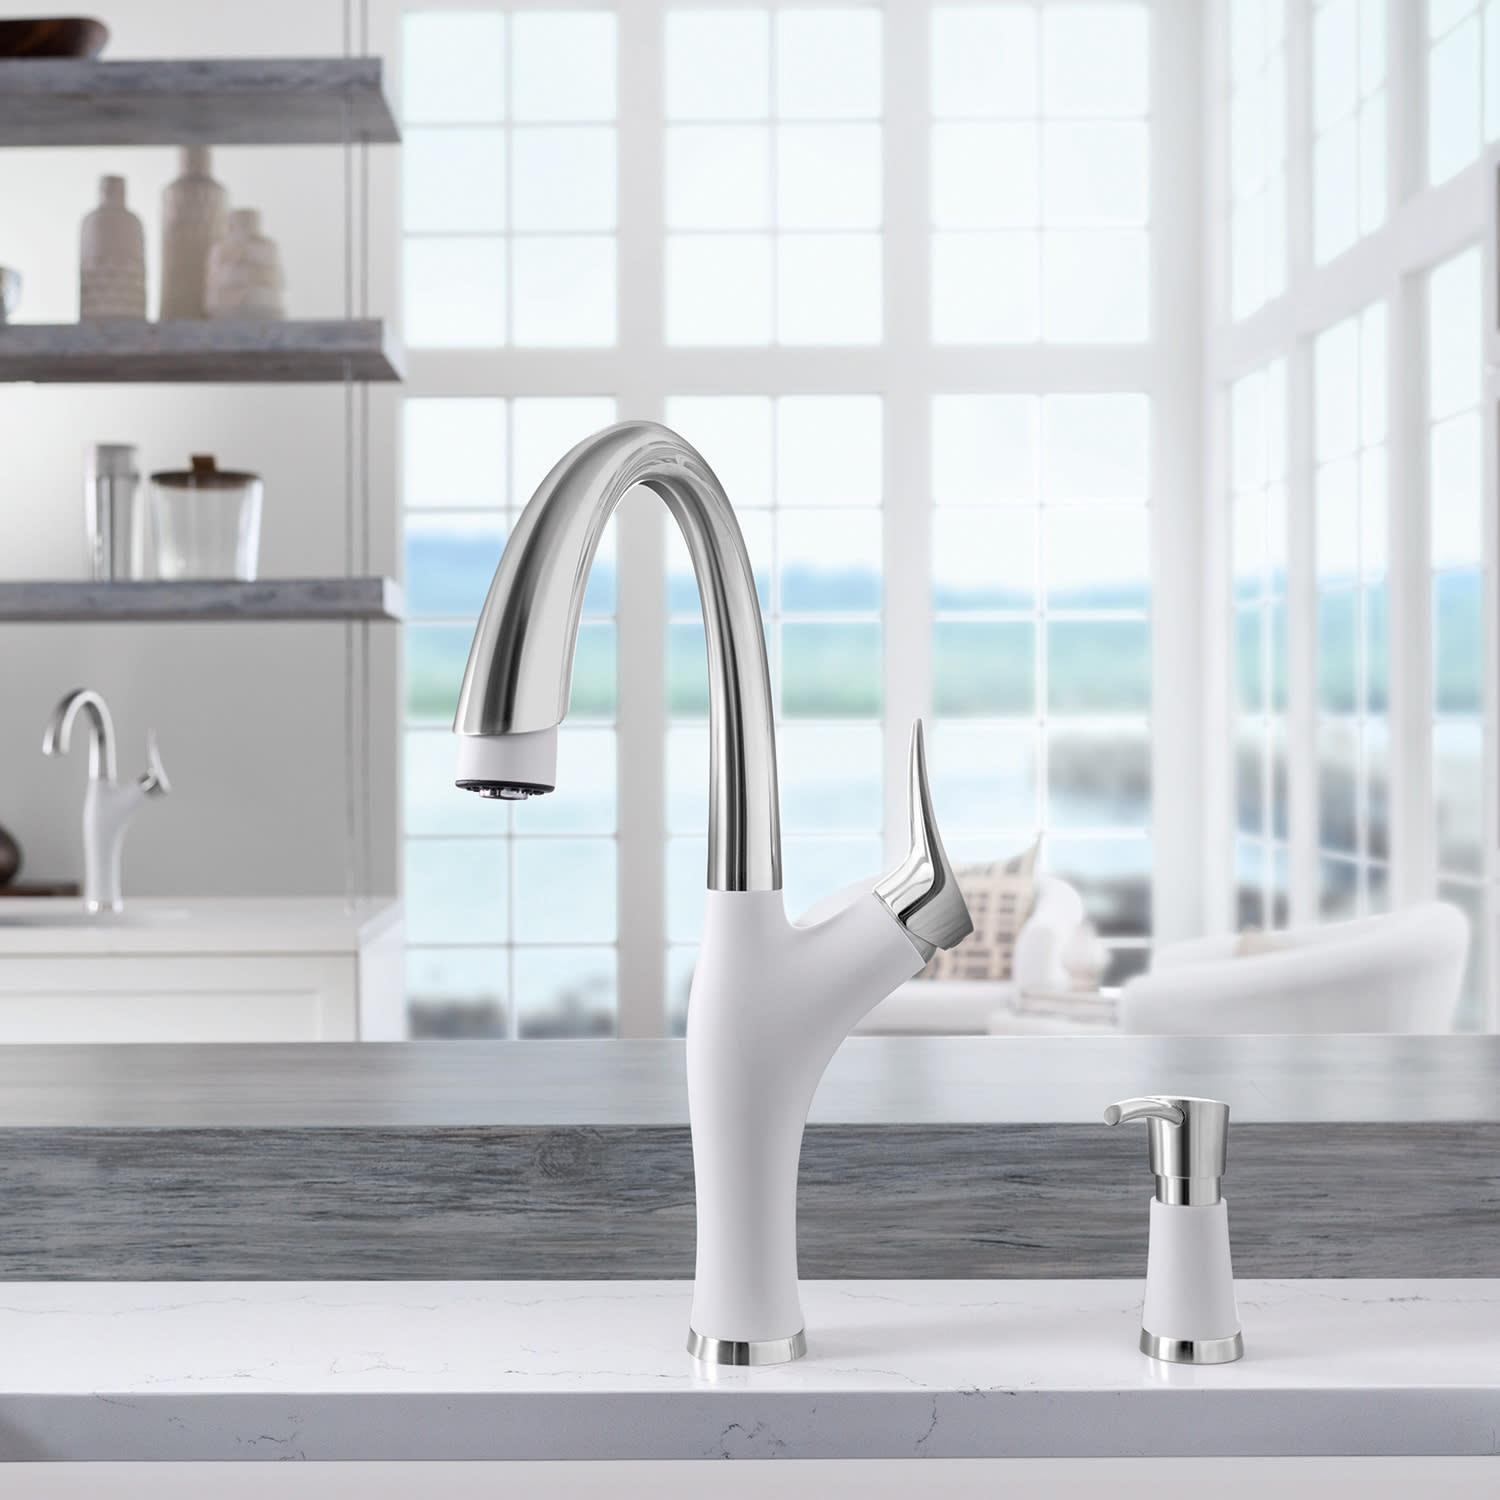 of blanco kitchen faucets beautiful semi faucet meridian images fresh also culina professional